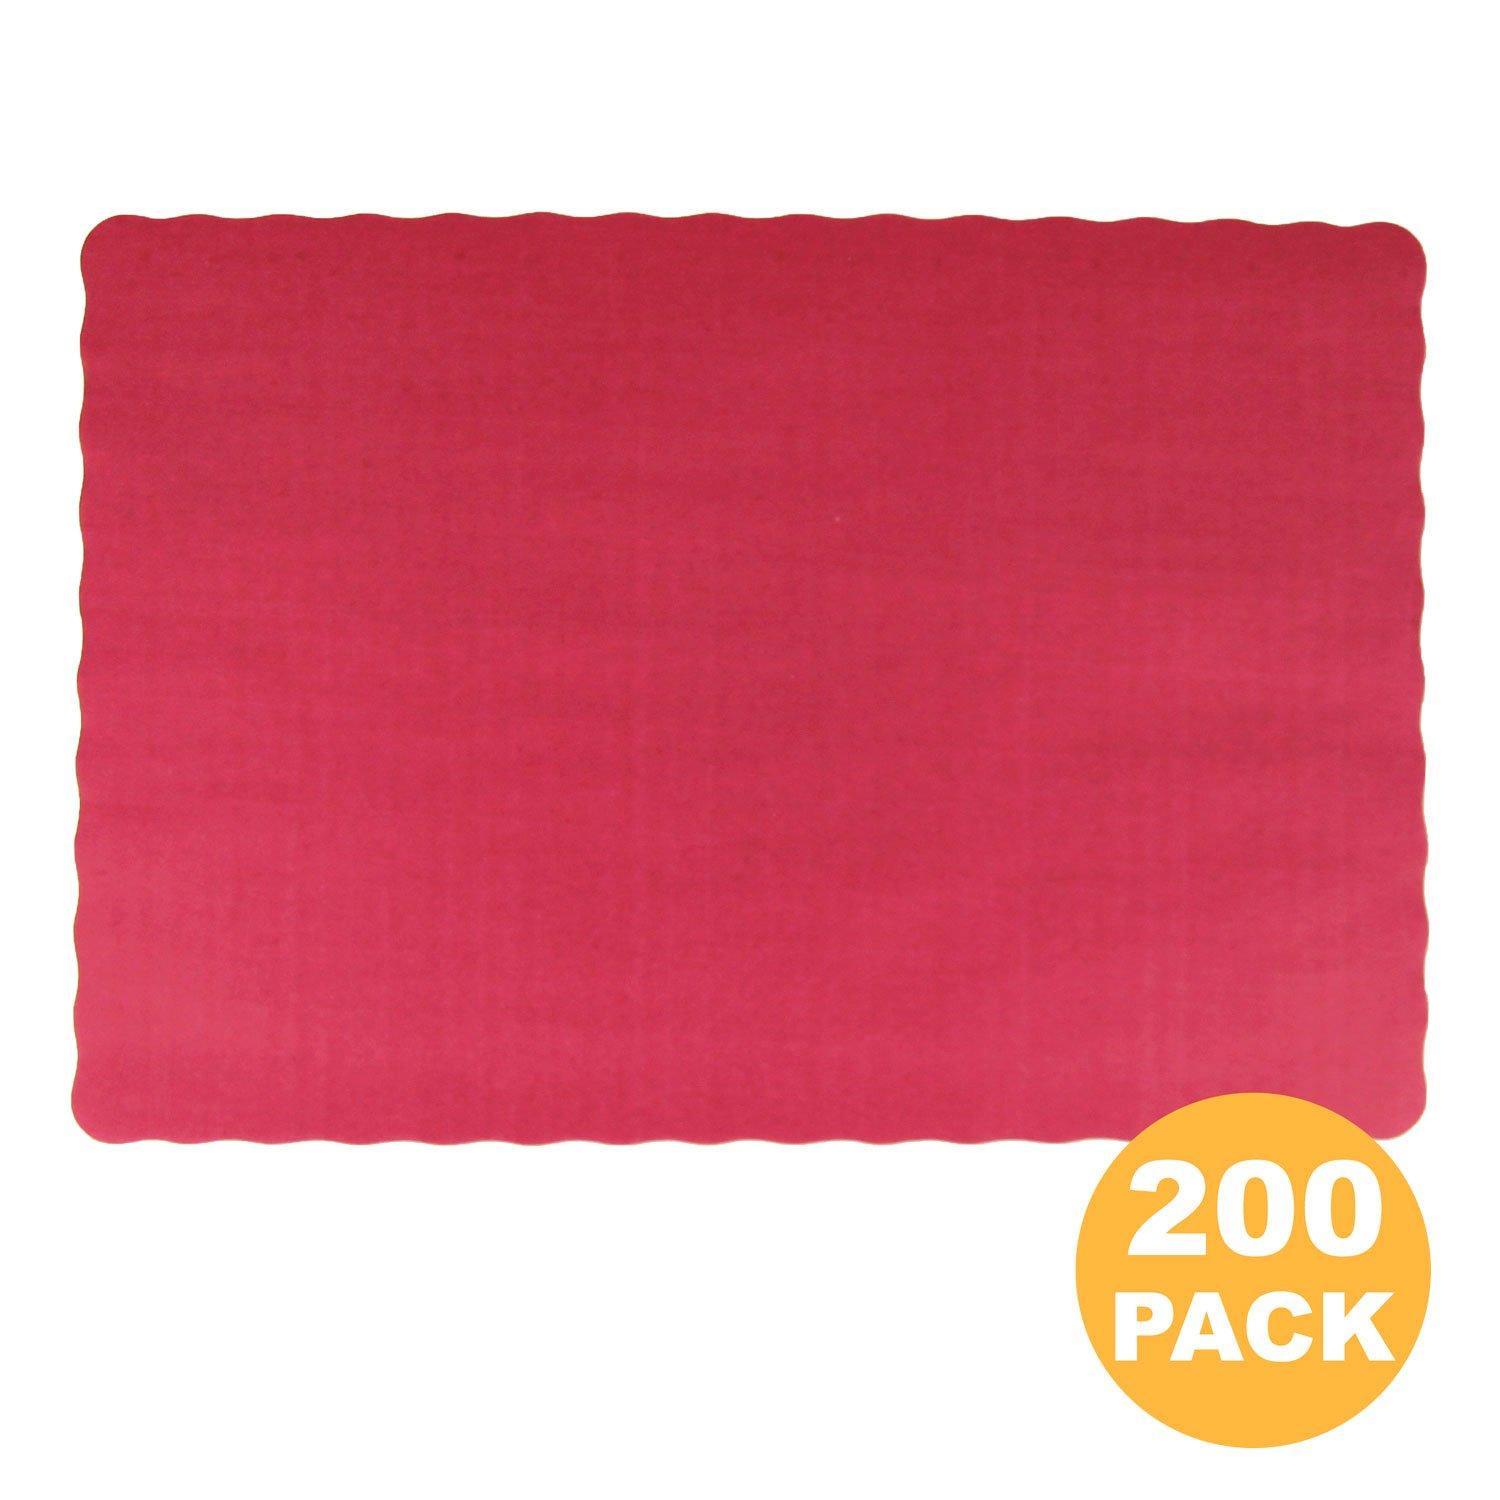 [200 Pack] Disposable 14 x 10'' Plain Pink Red Burgundy Paper Placemat with Decorative Wavy Scalloped Edge